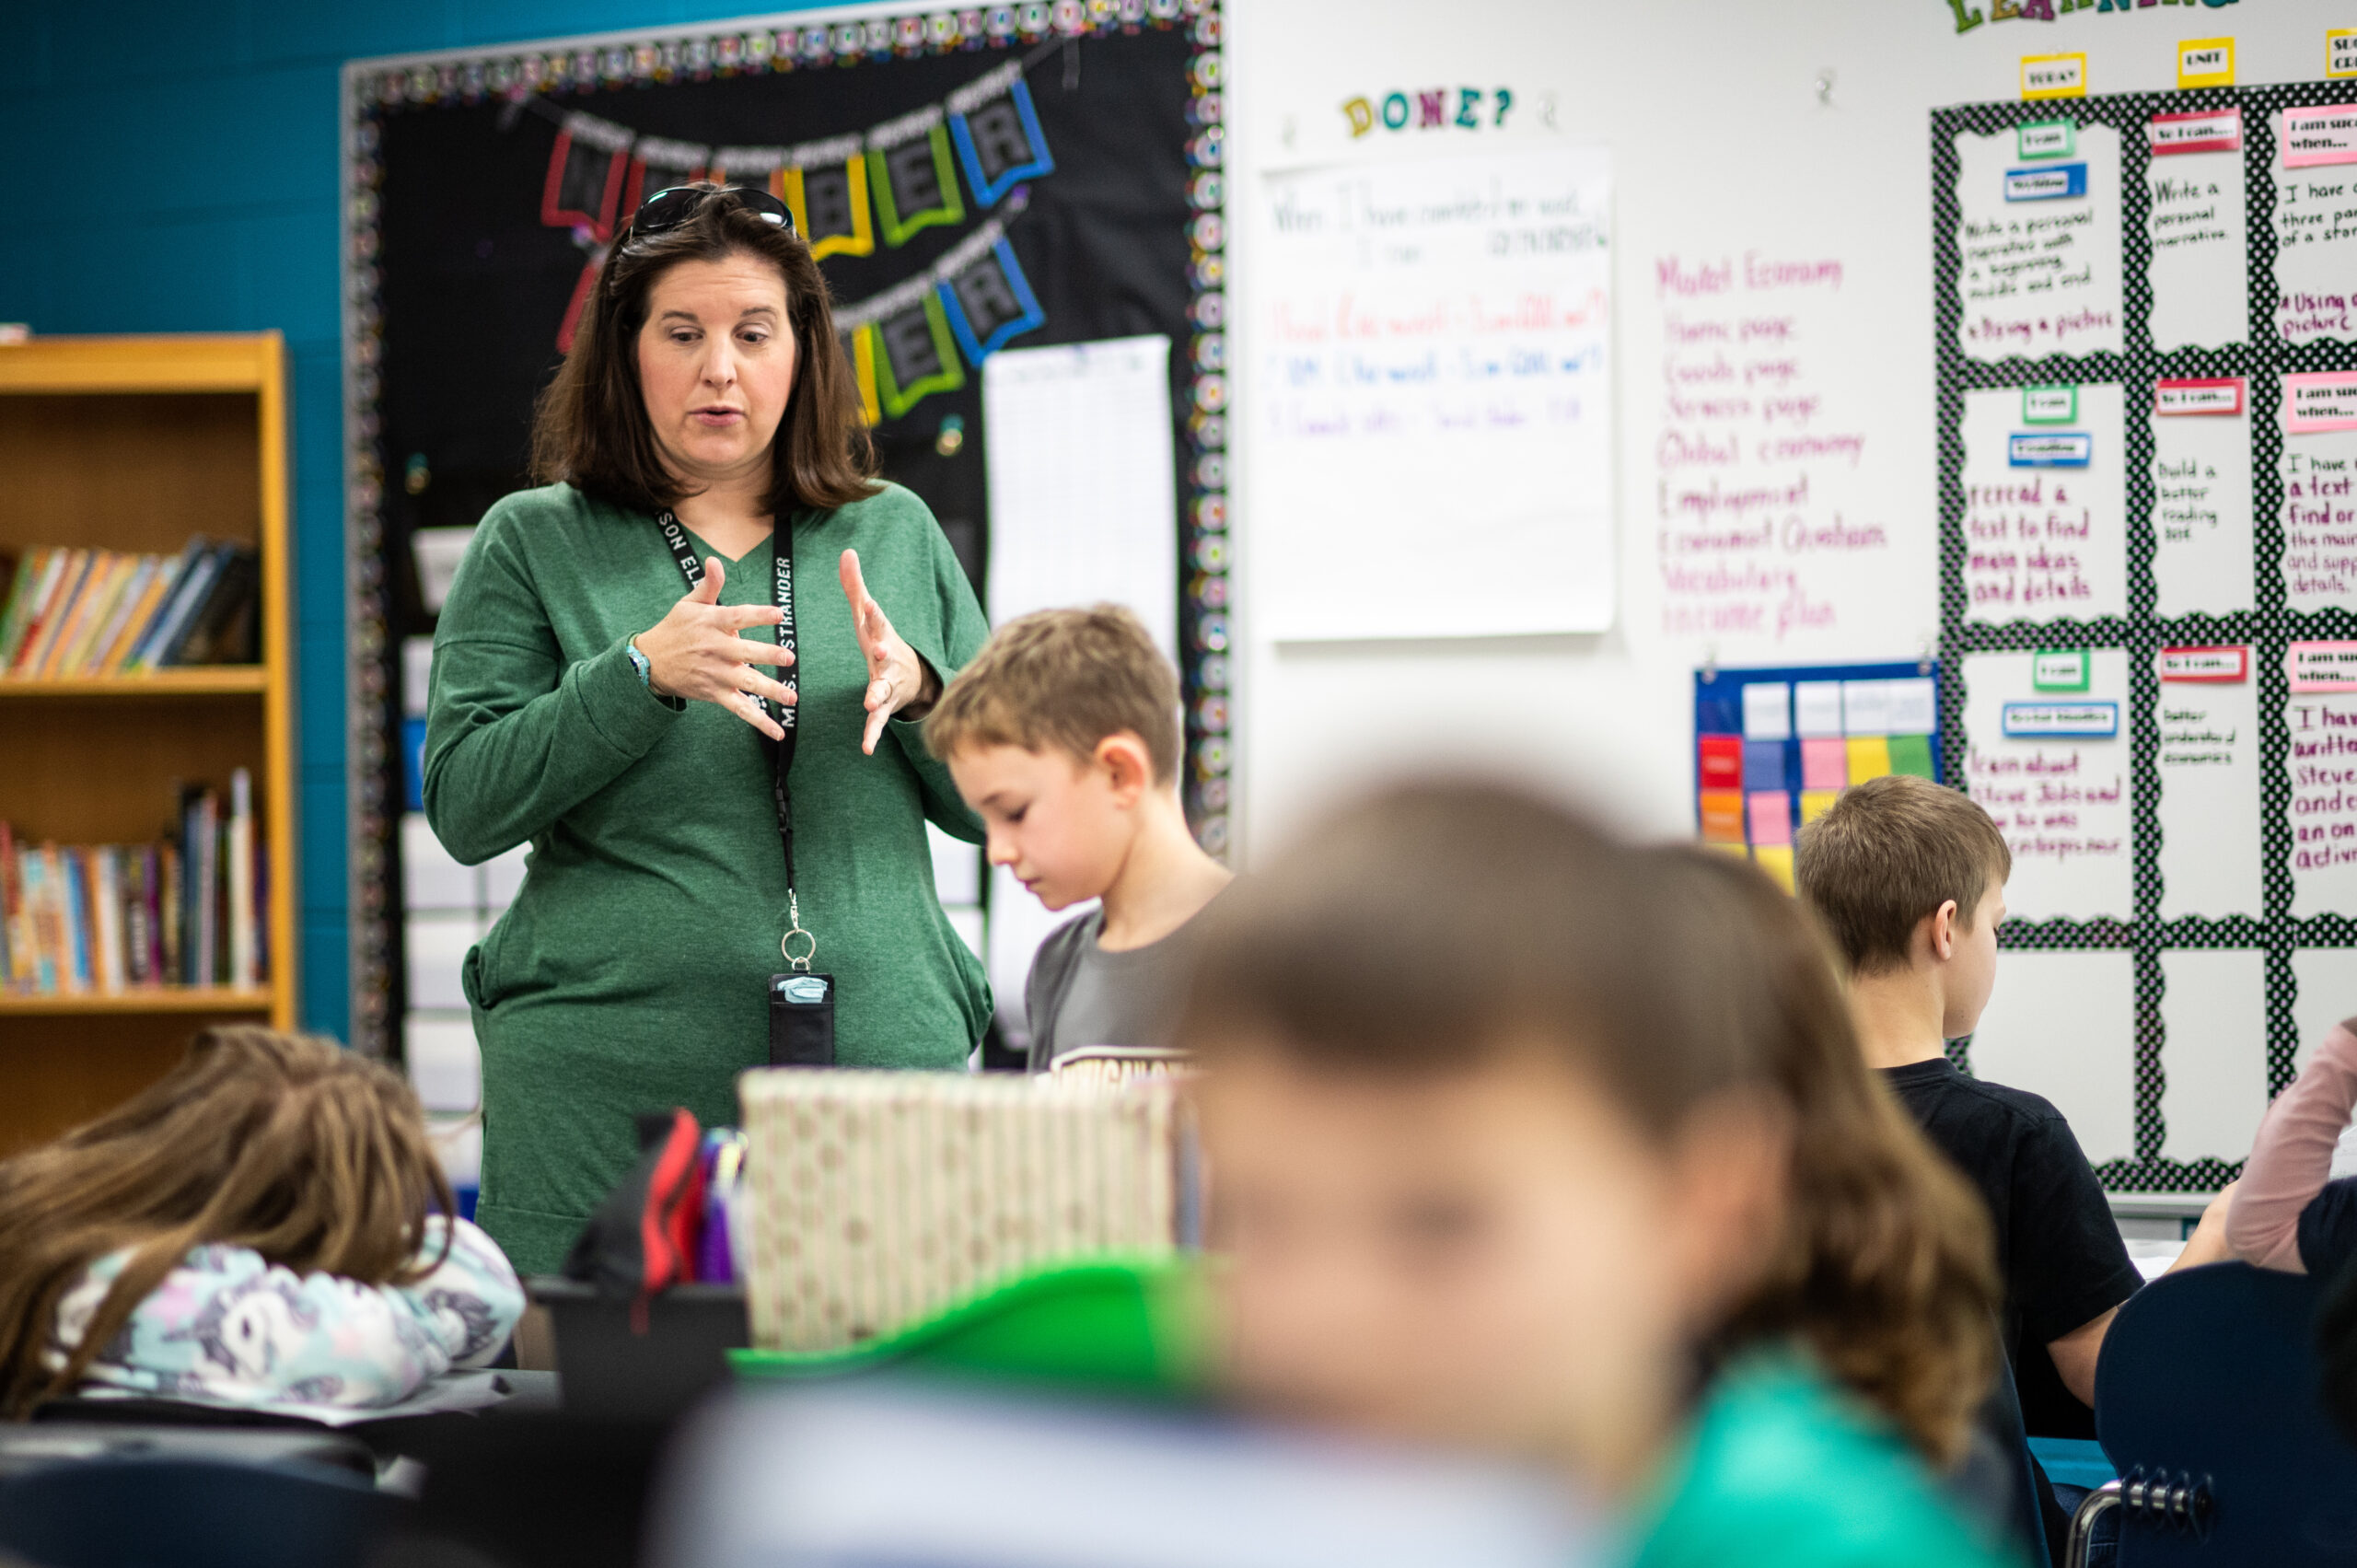 Christina Ostrander, a teacher at Mason Elementary School, said the program integrated seamlessly into what they were already doing in the classroom. She participated in the pilot last winter and the program has operated virtually since spring. Image credit: Eric Bronson / Michigan Photography